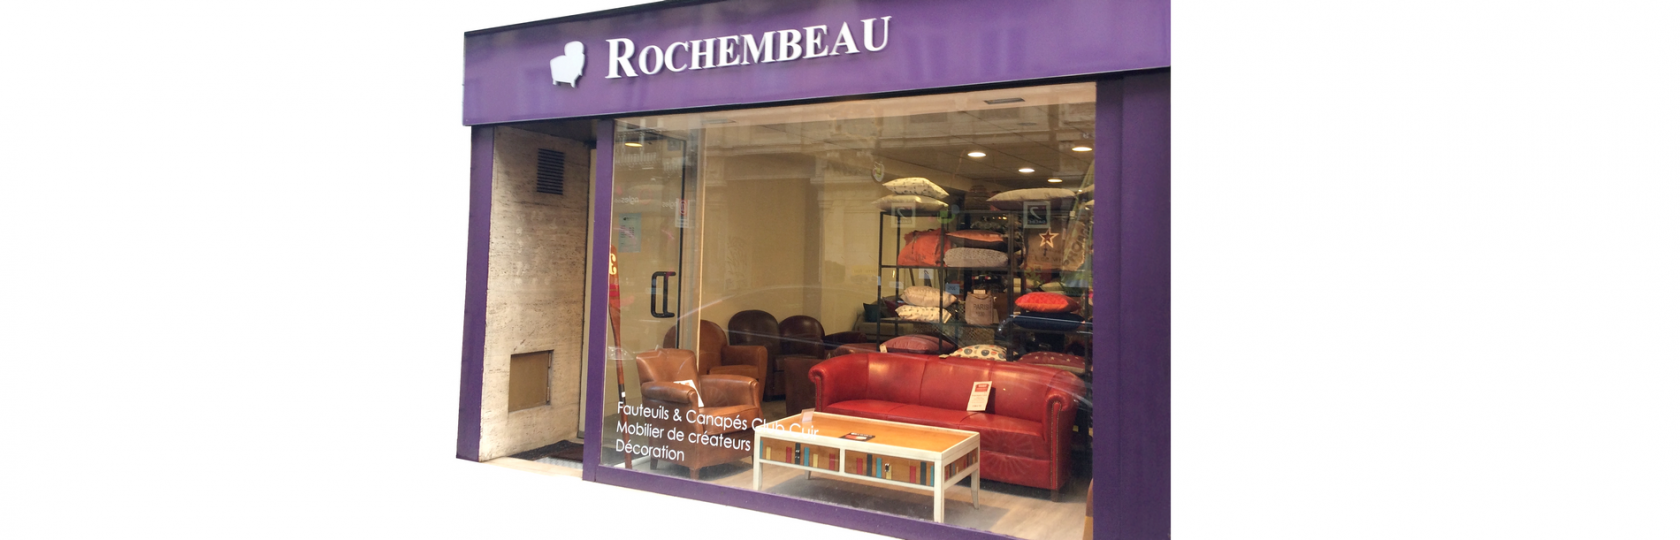 magasin de meubles rennes centre ville rochembeau rennes. Black Bedroom Furniture Sets. Home Design Ideas